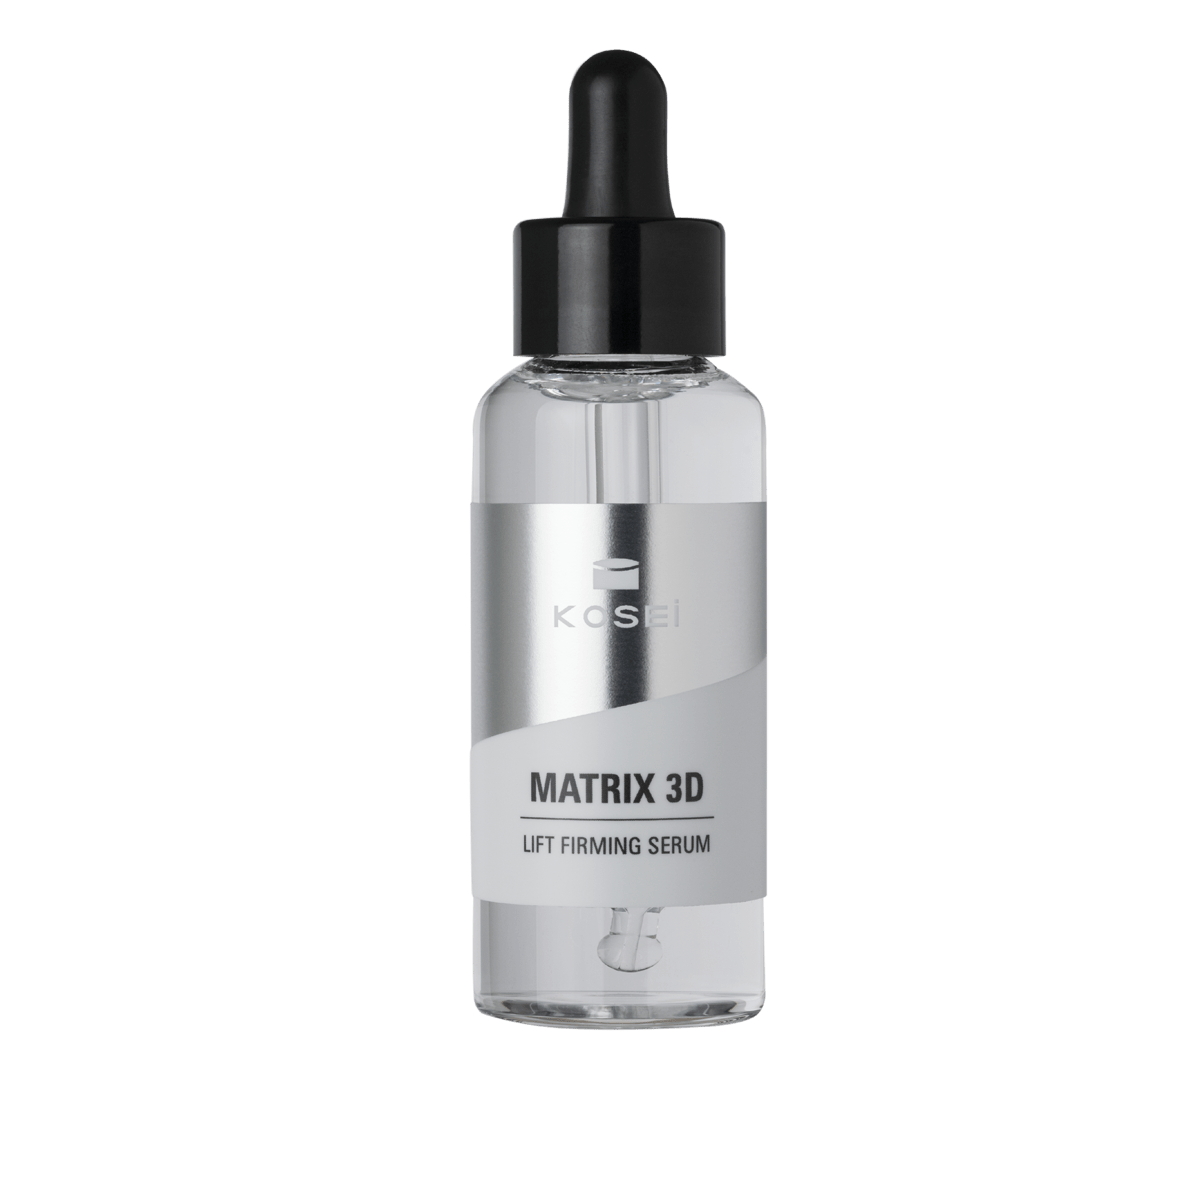 kosei-matrix-3D-lift-firming-serum-50ml